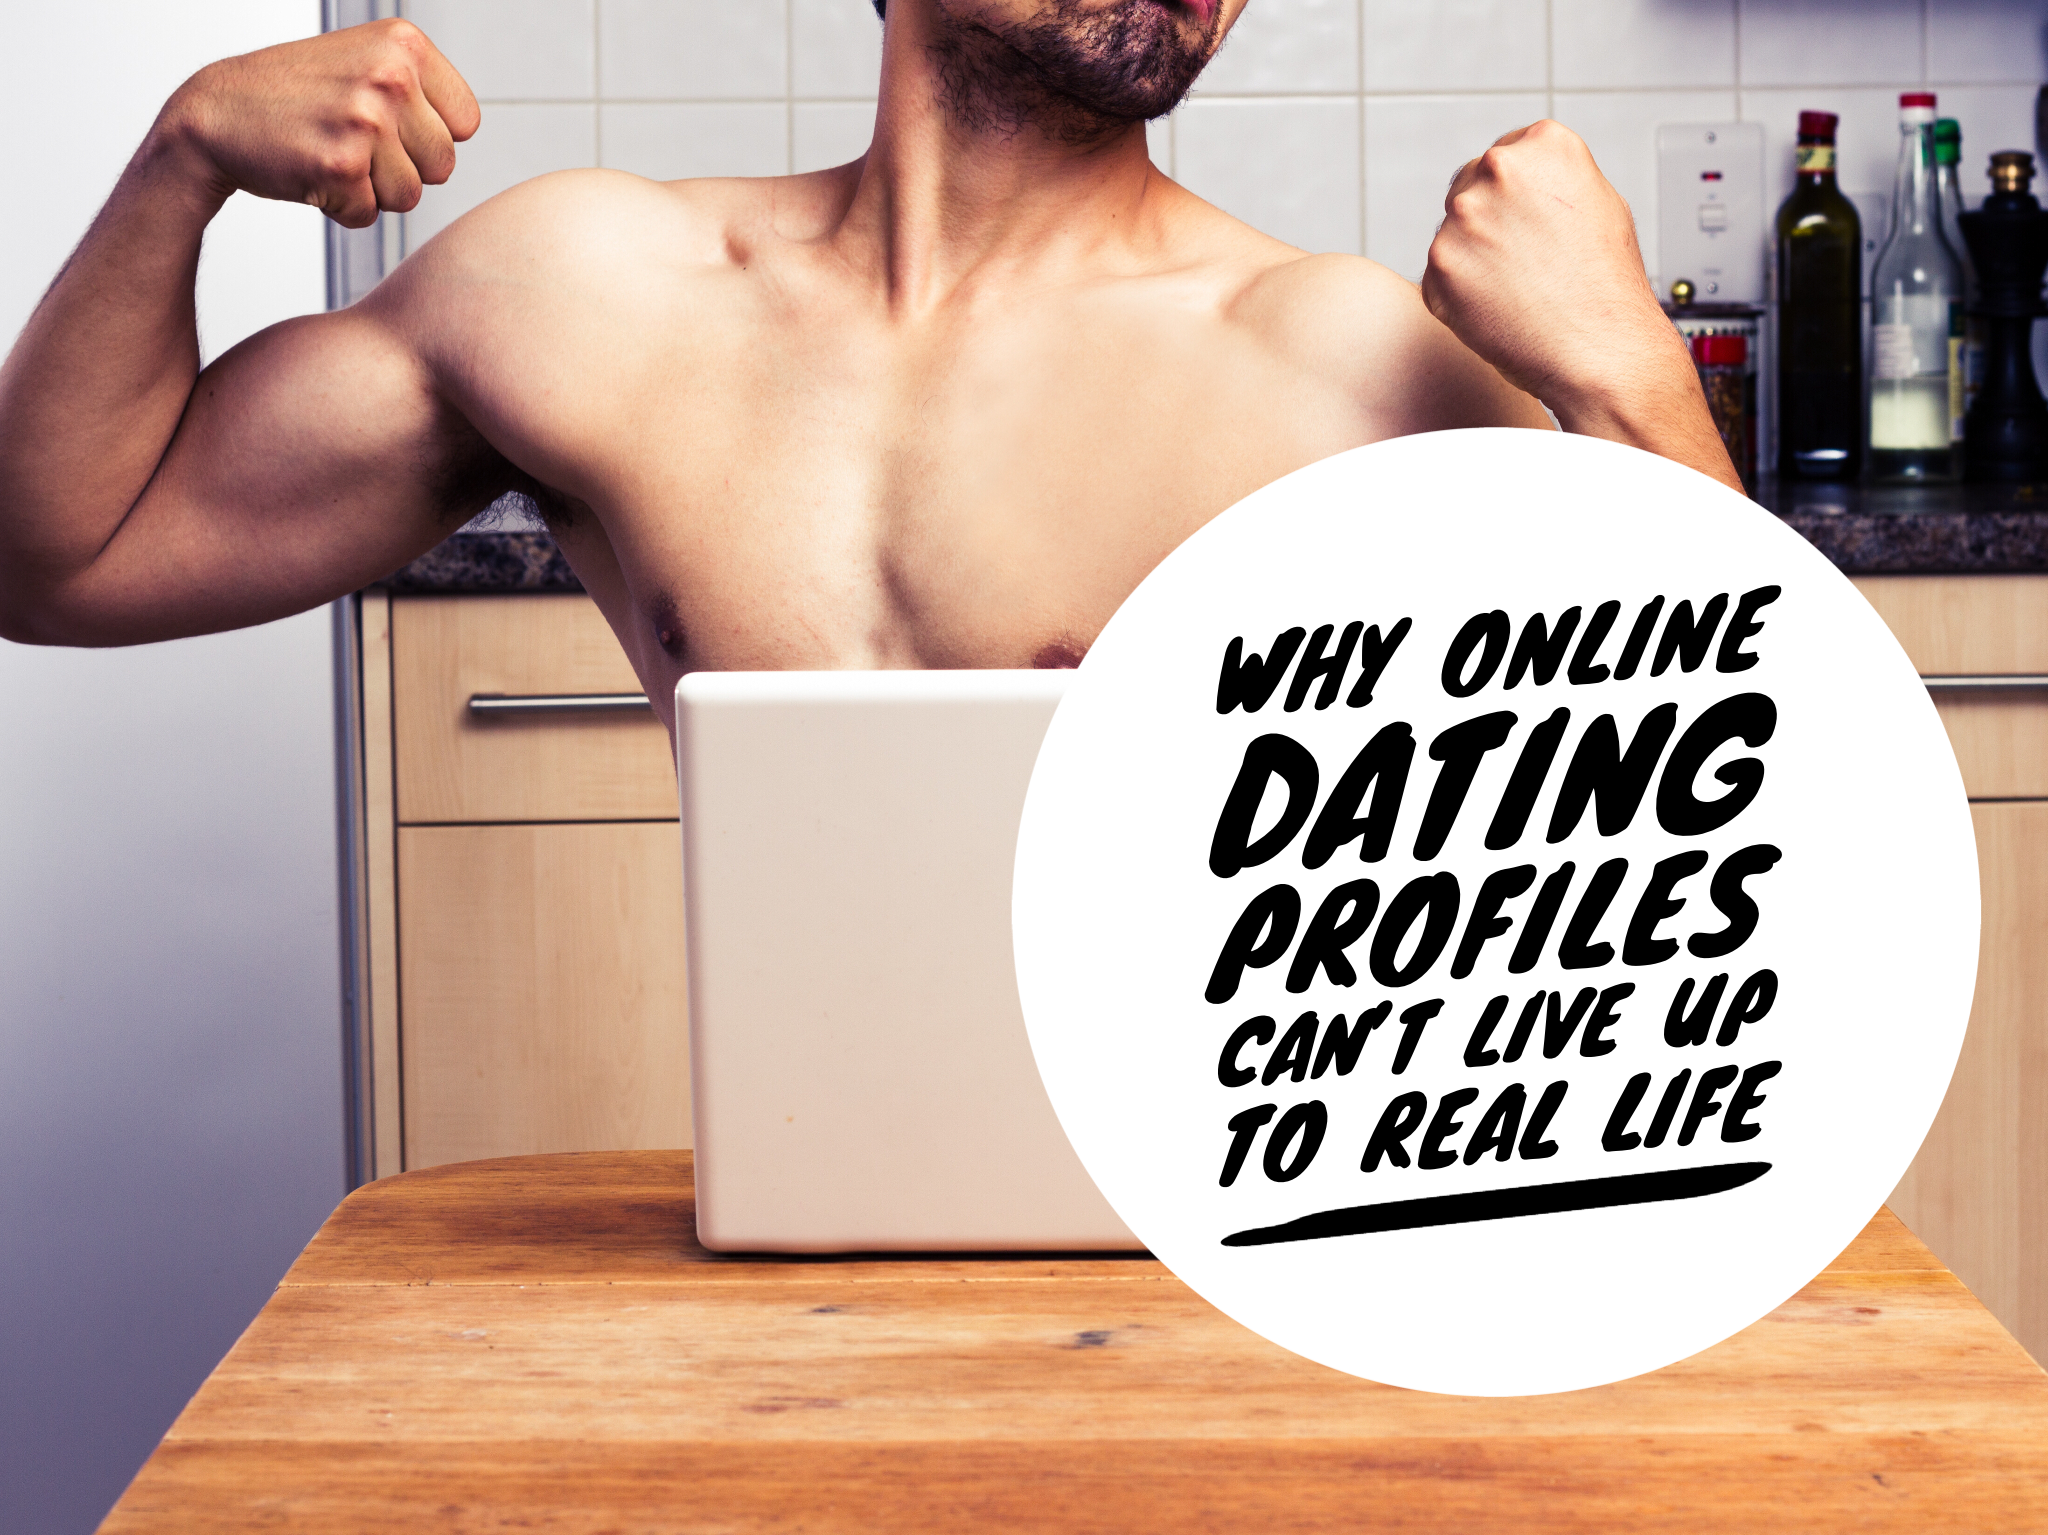 Why Online Dating Profiles Can't Live Up To Real Life